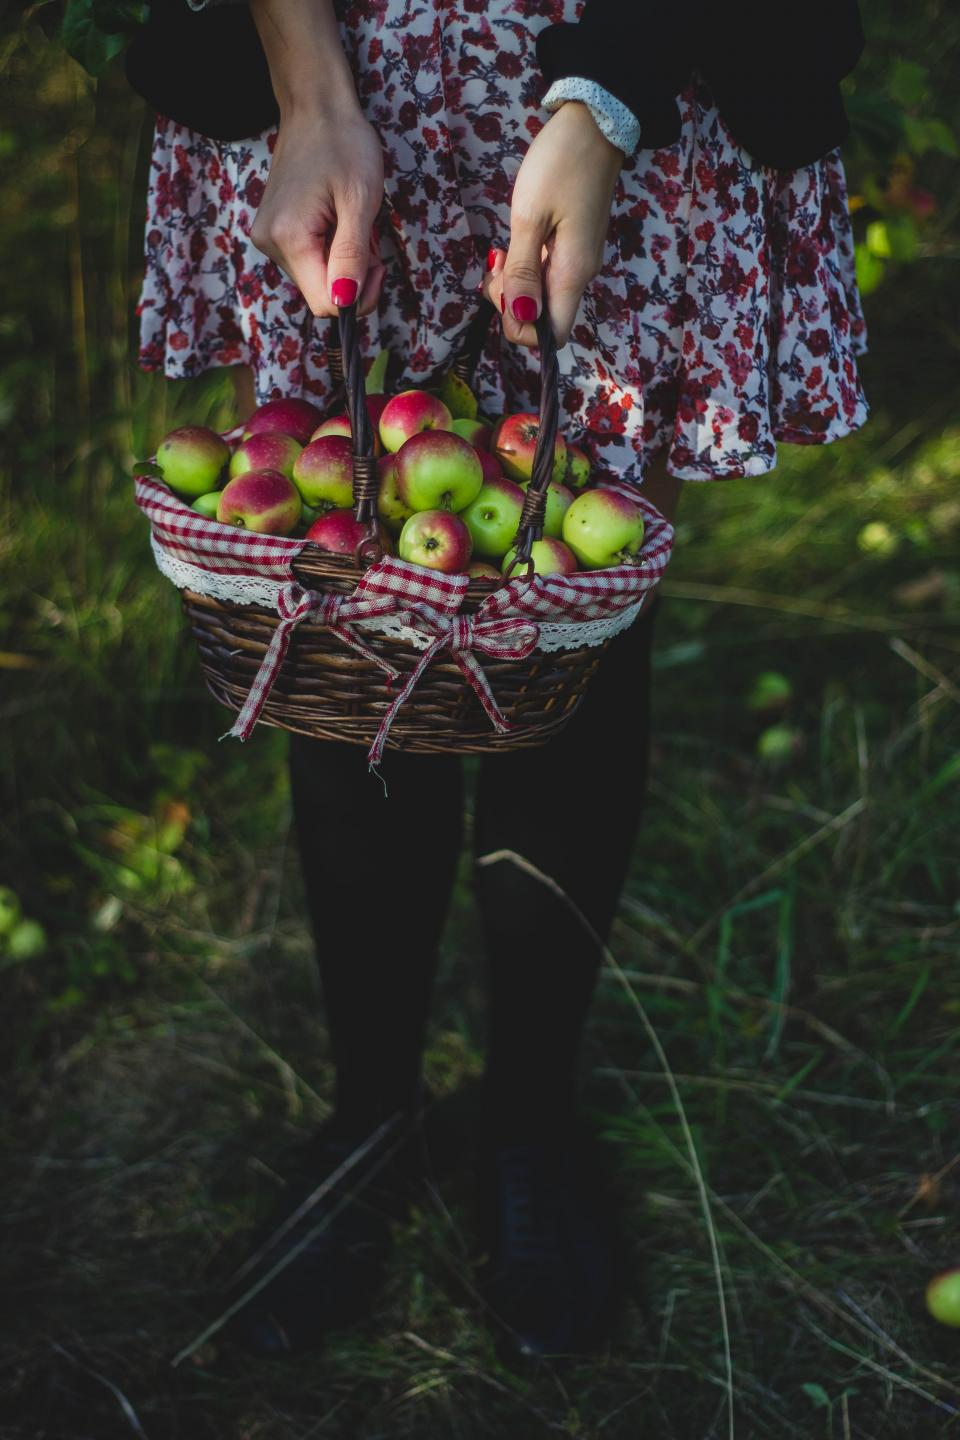 apple basket fruit food green grass outdoor farm harvest people woman girl bokeh blur